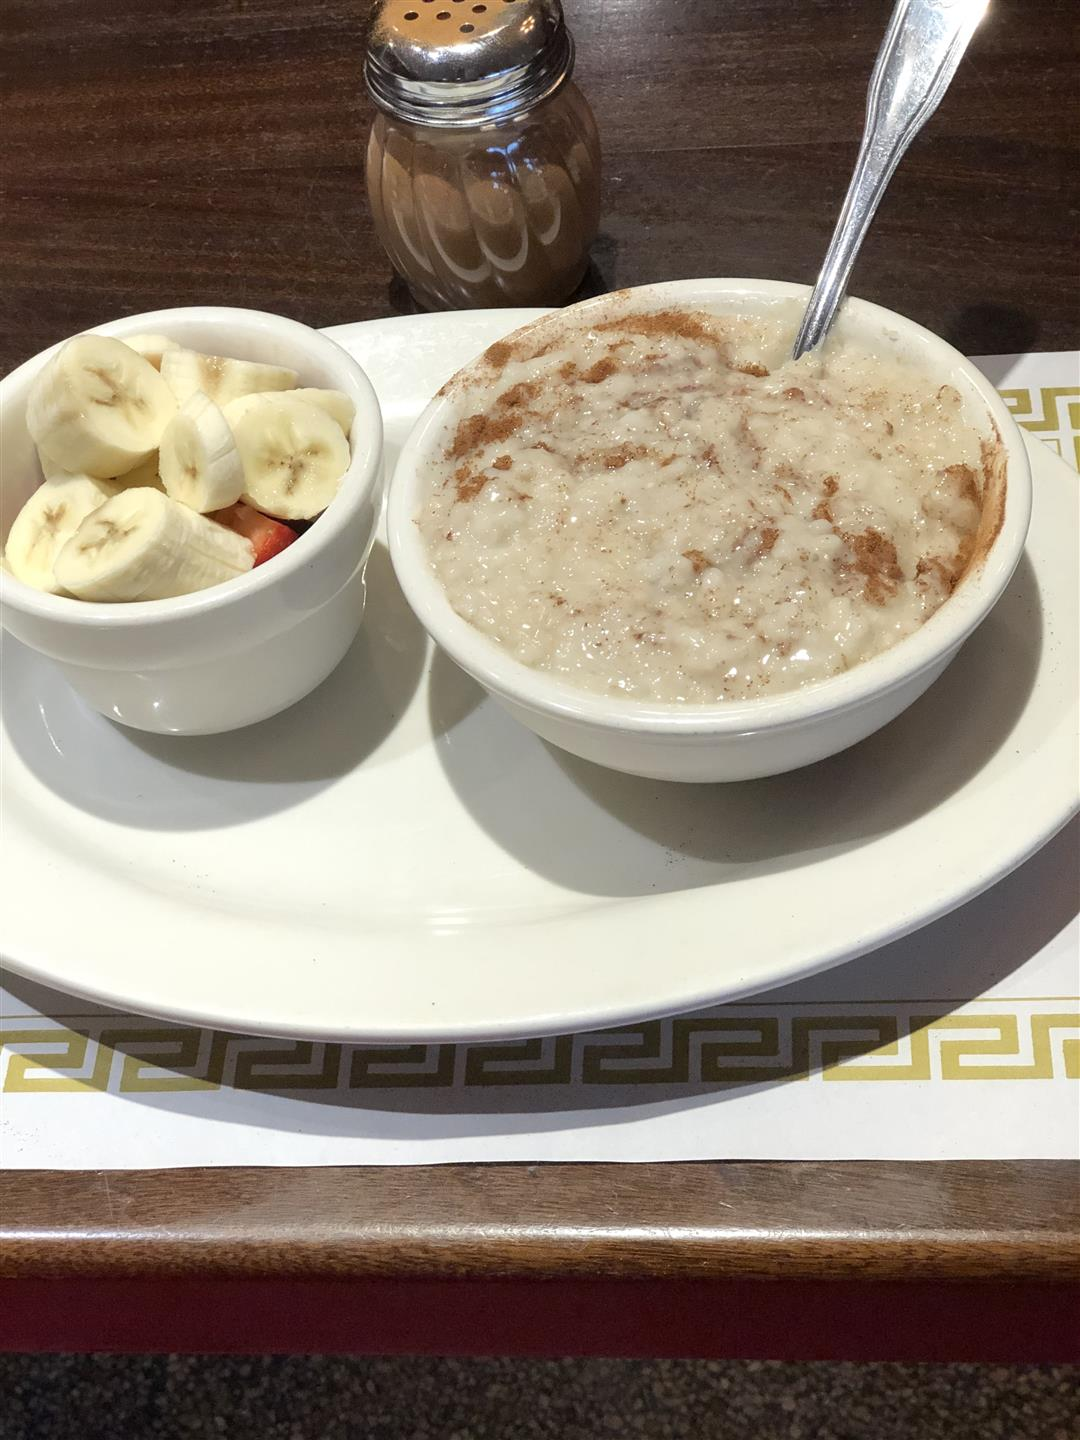 oatmeal with fruit on the side